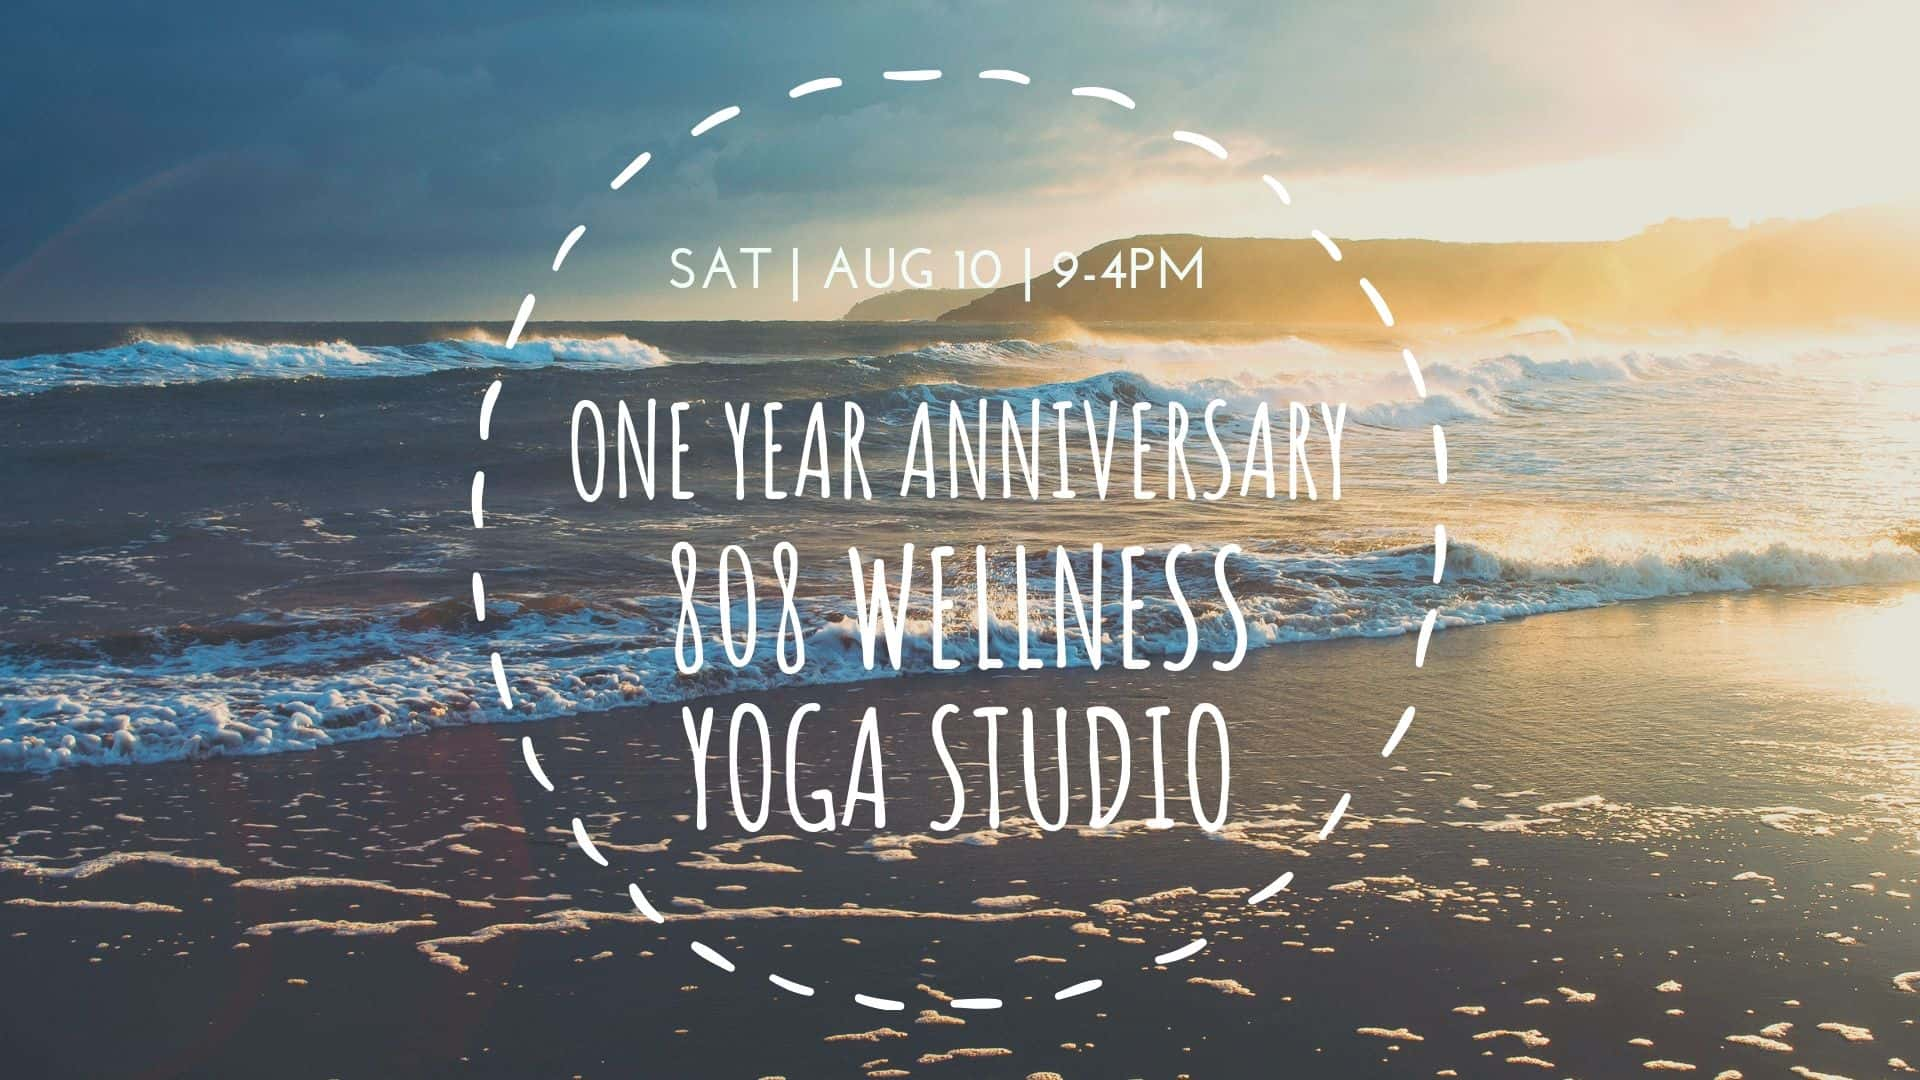 Anniversary 808 Wellness Studio